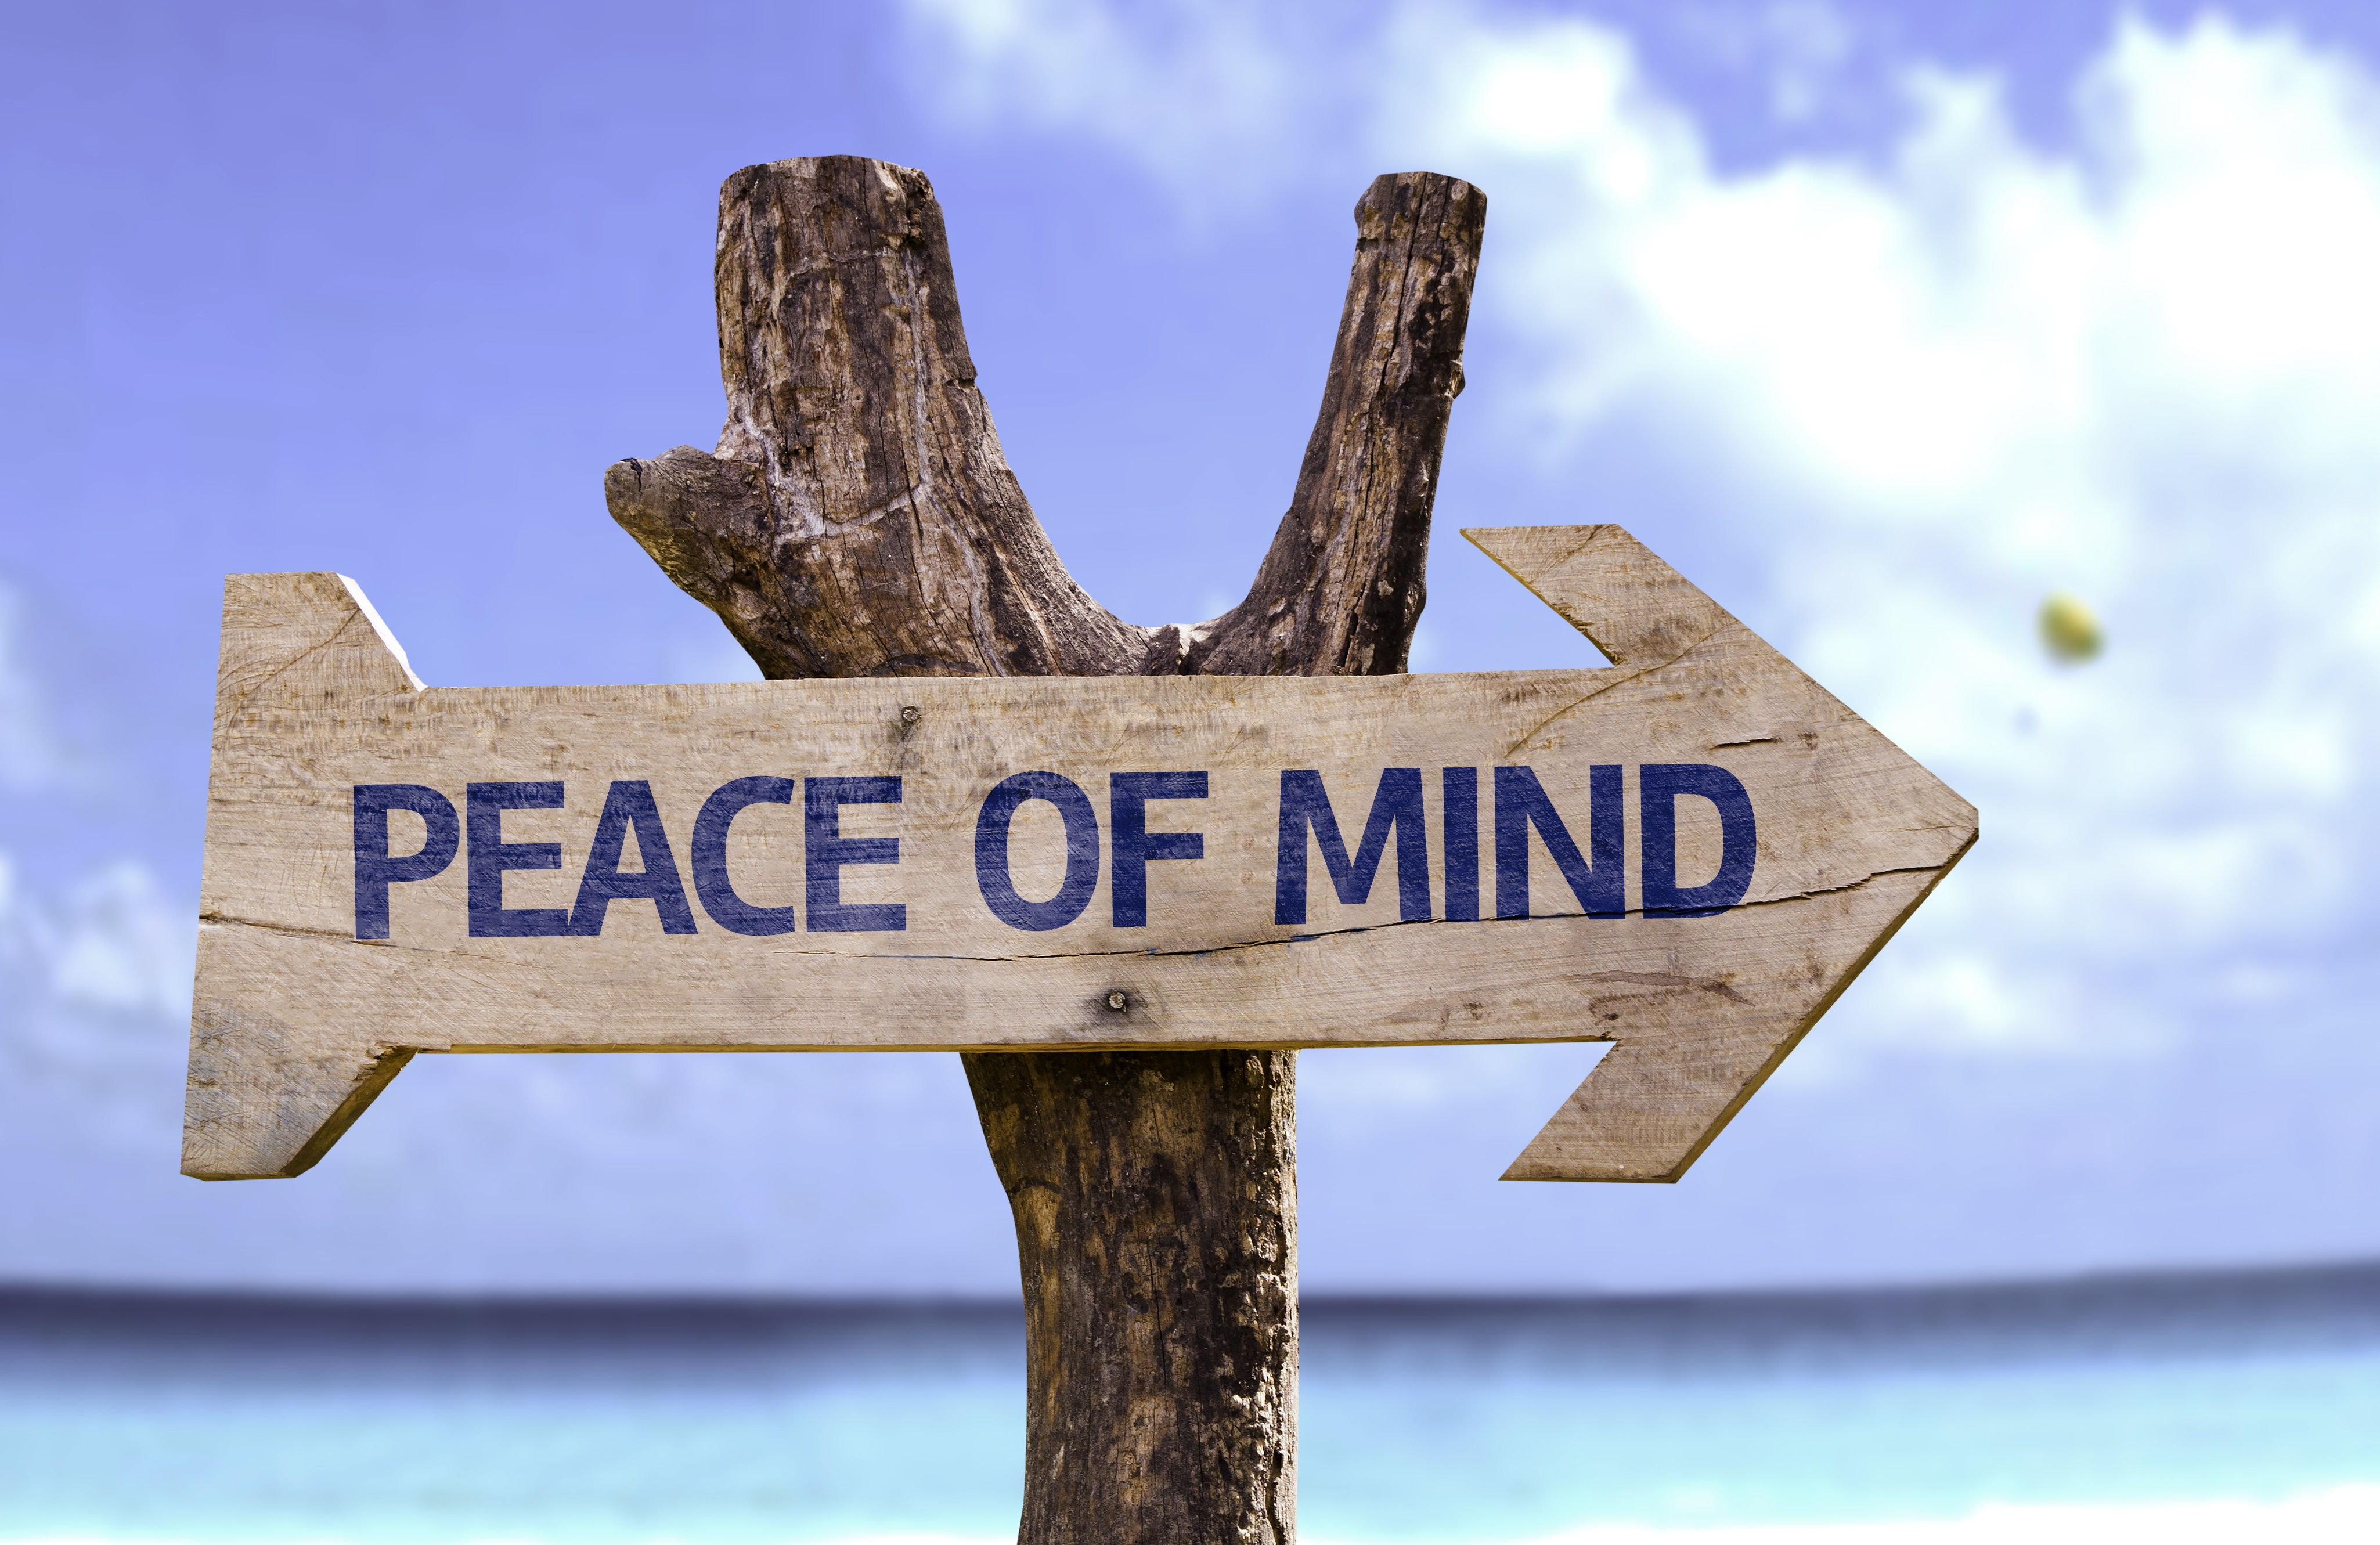 peace of mind this way